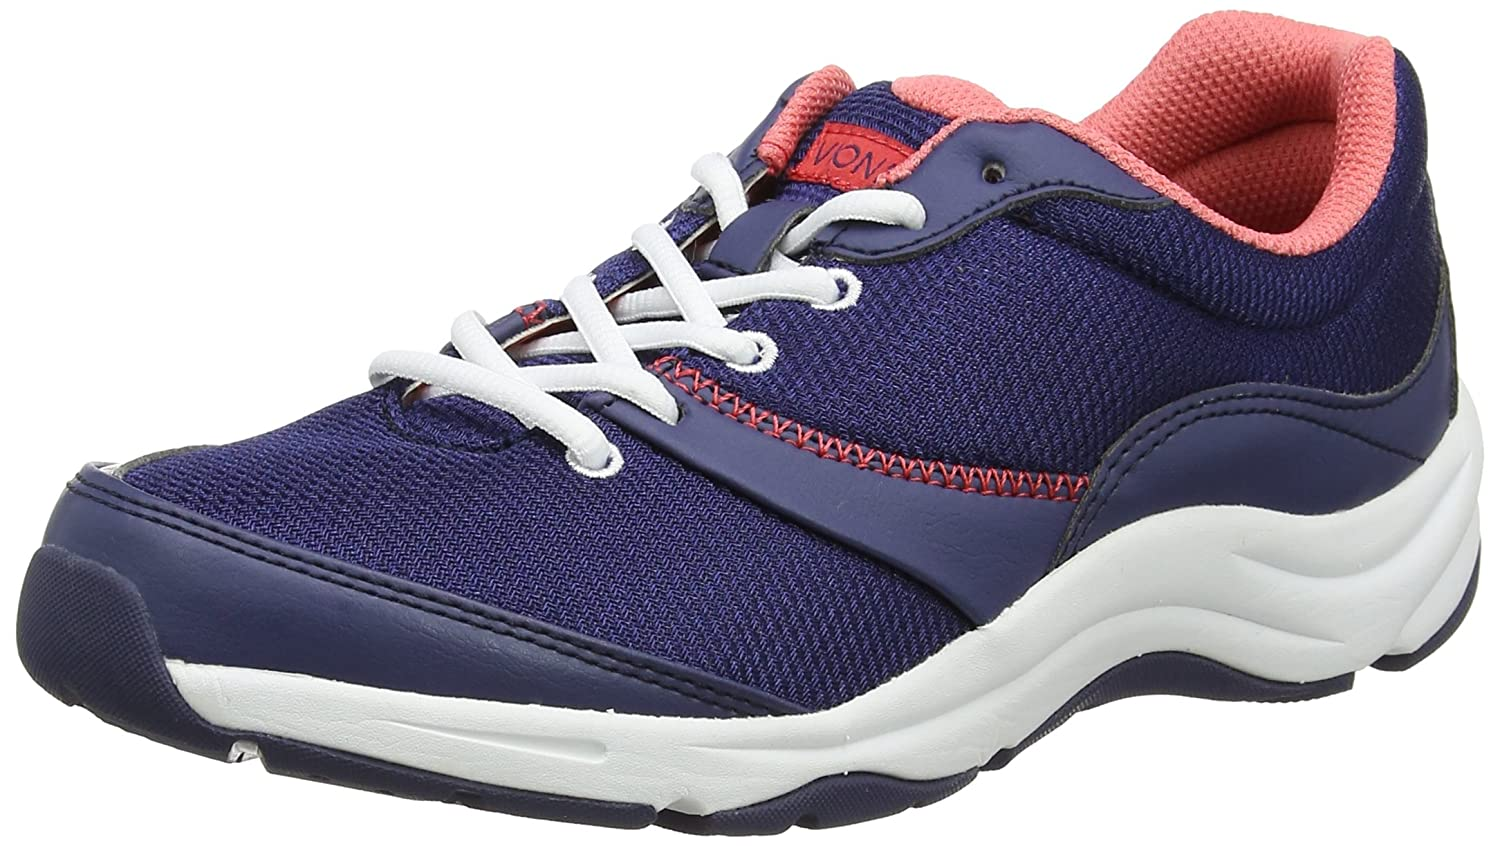 Vionic Kona Women's Orthotic Athletic Shoe B00PSFK1V0 9.5 C/D US|Navy/Coral